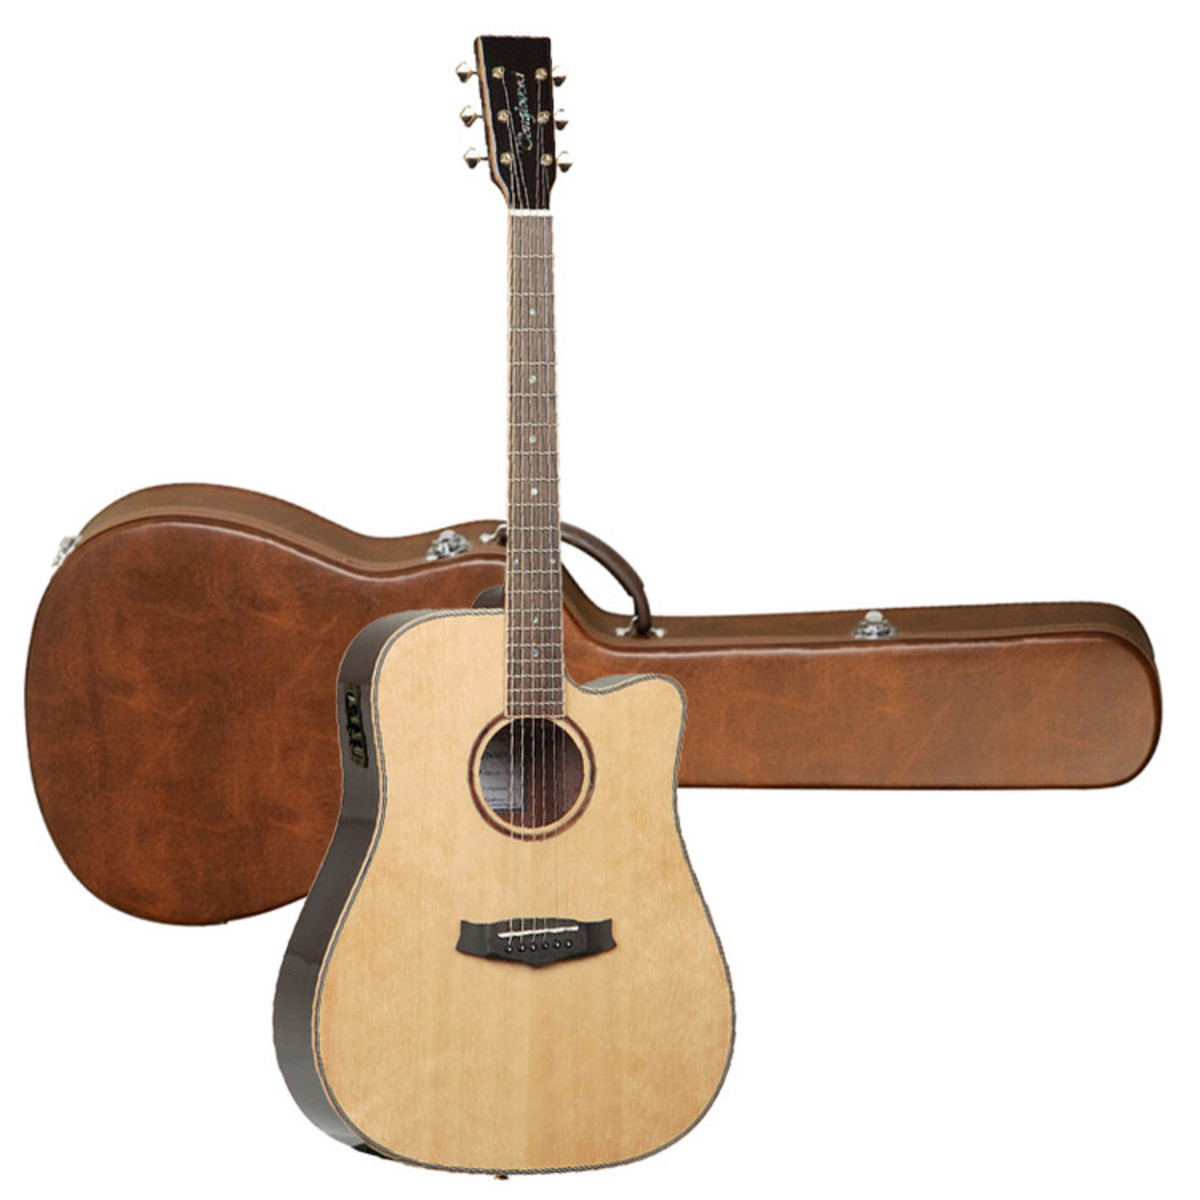 tanglewood specific ksaos Tanglewood utilizes various methods within this type of recruiting is valuable when looking for candidates with specific ksaos tanglewood case essay.